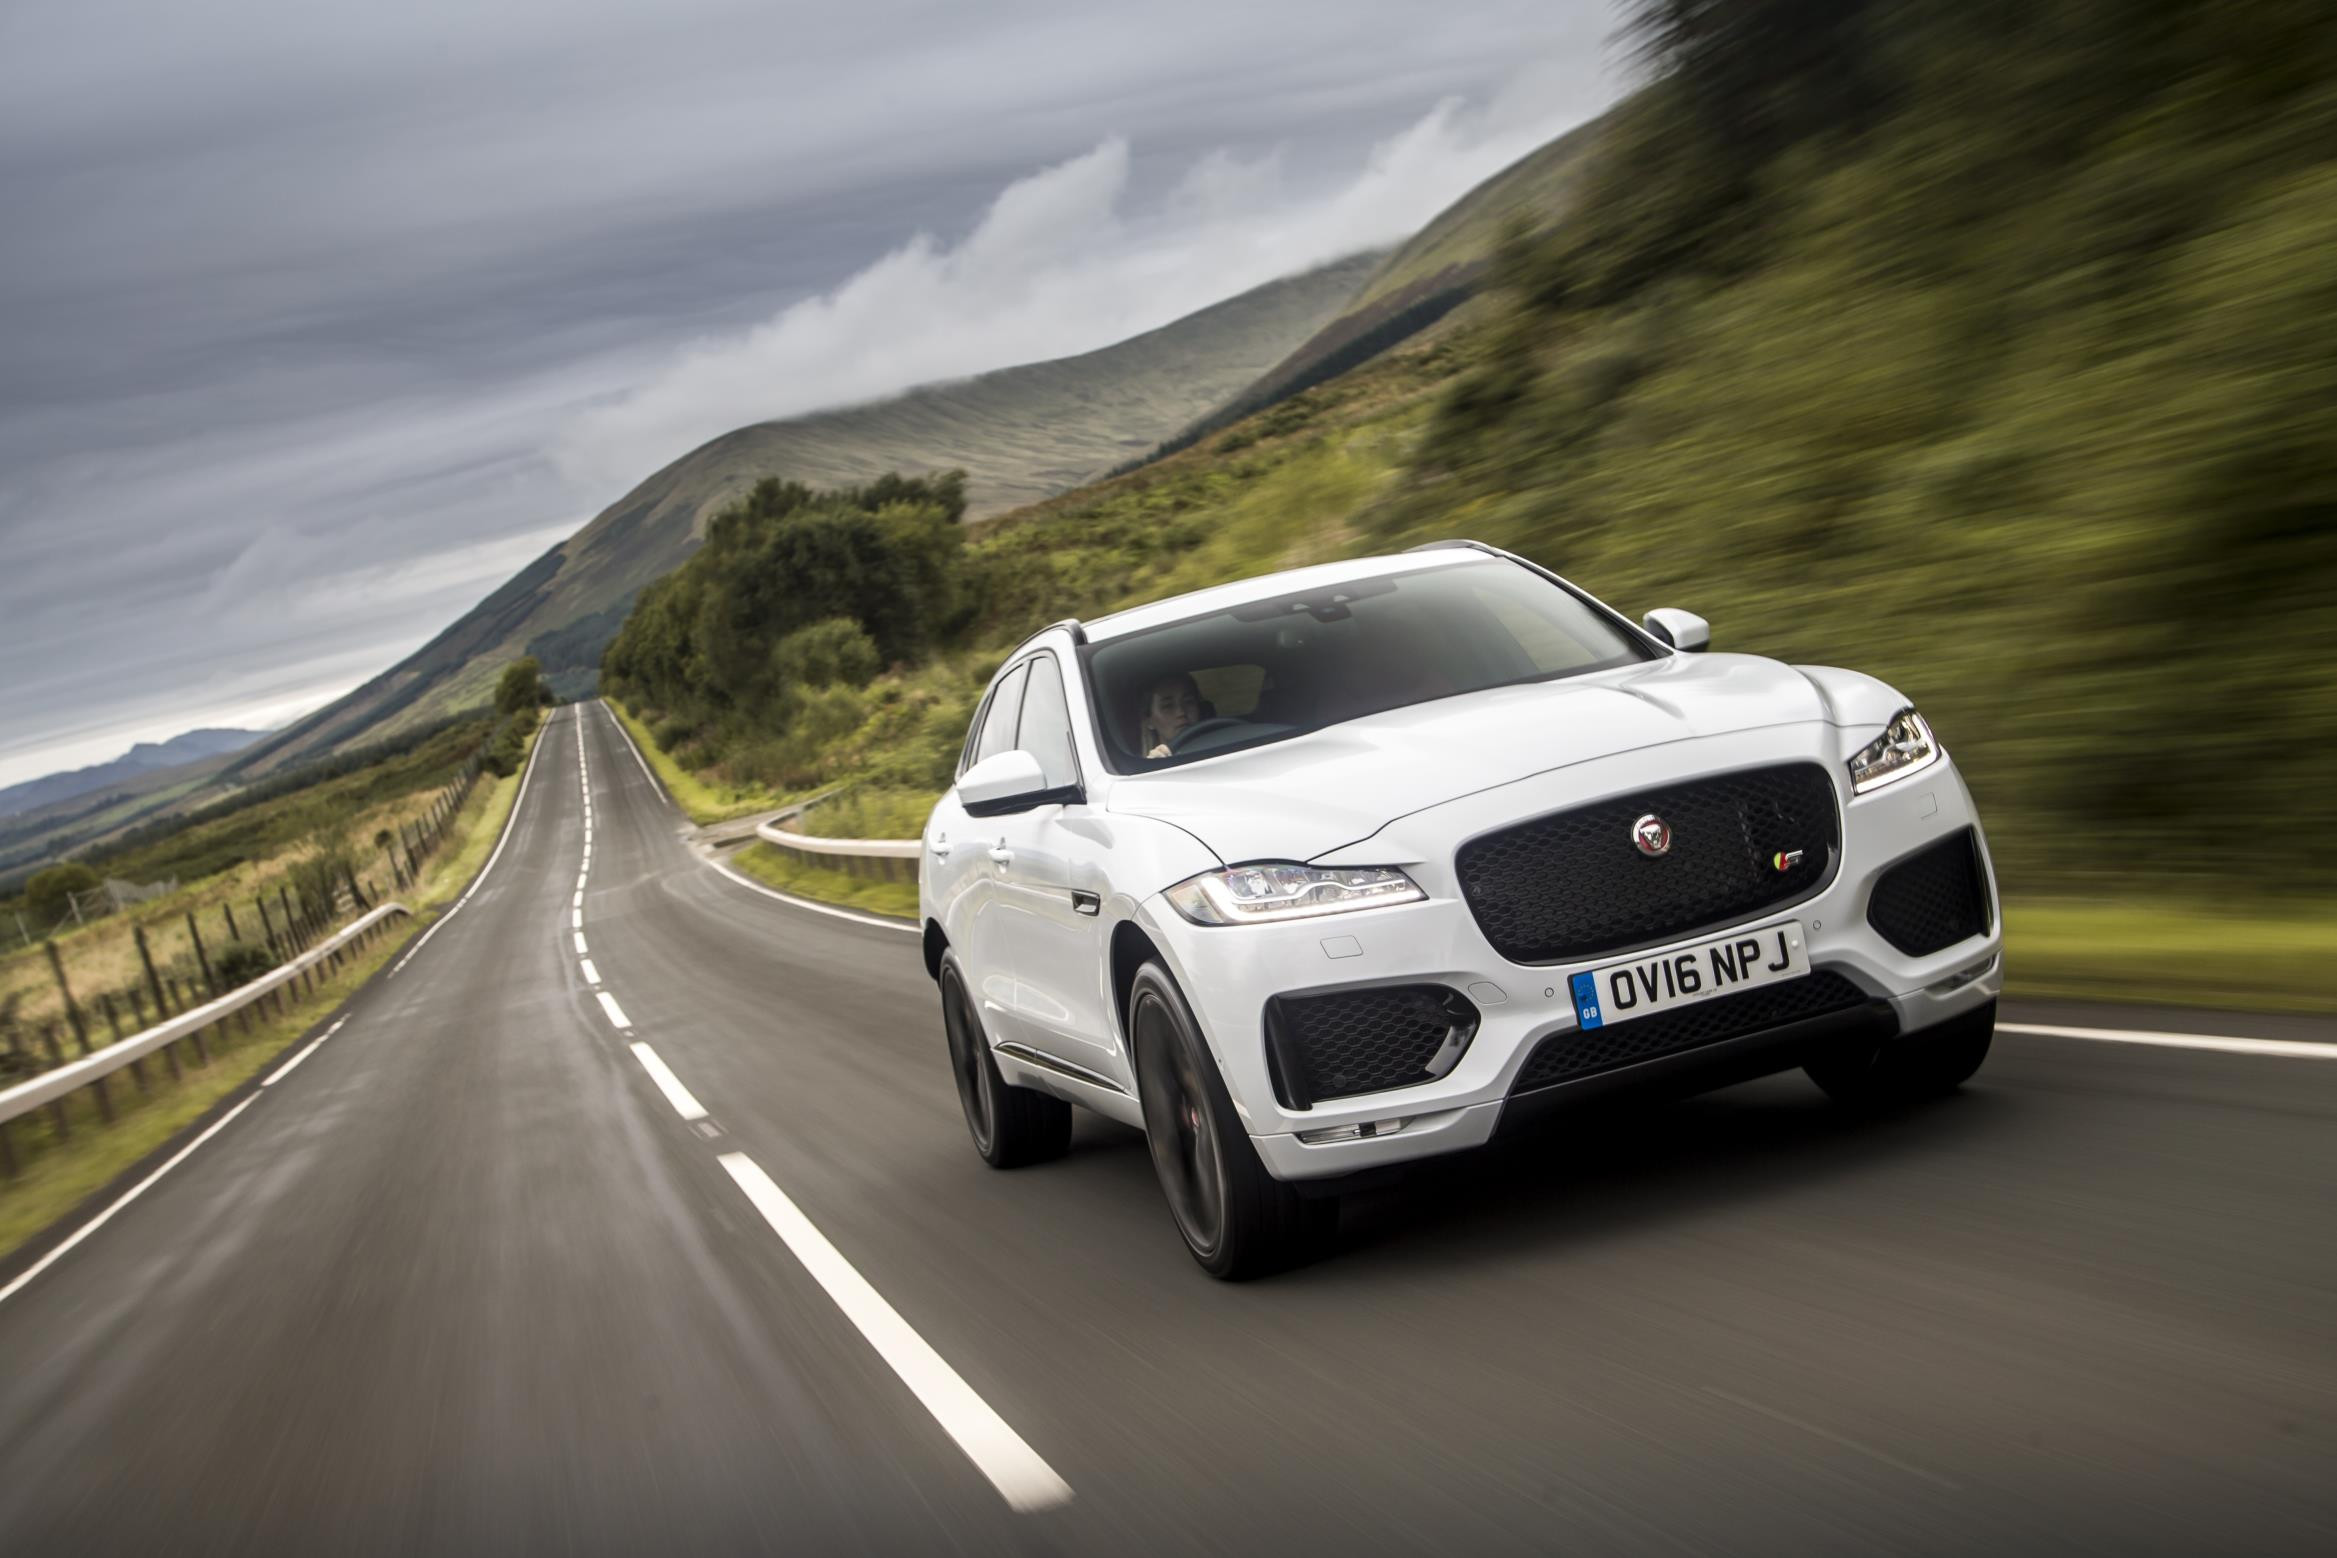 White Jaguar F-Pace driving towards you at speed